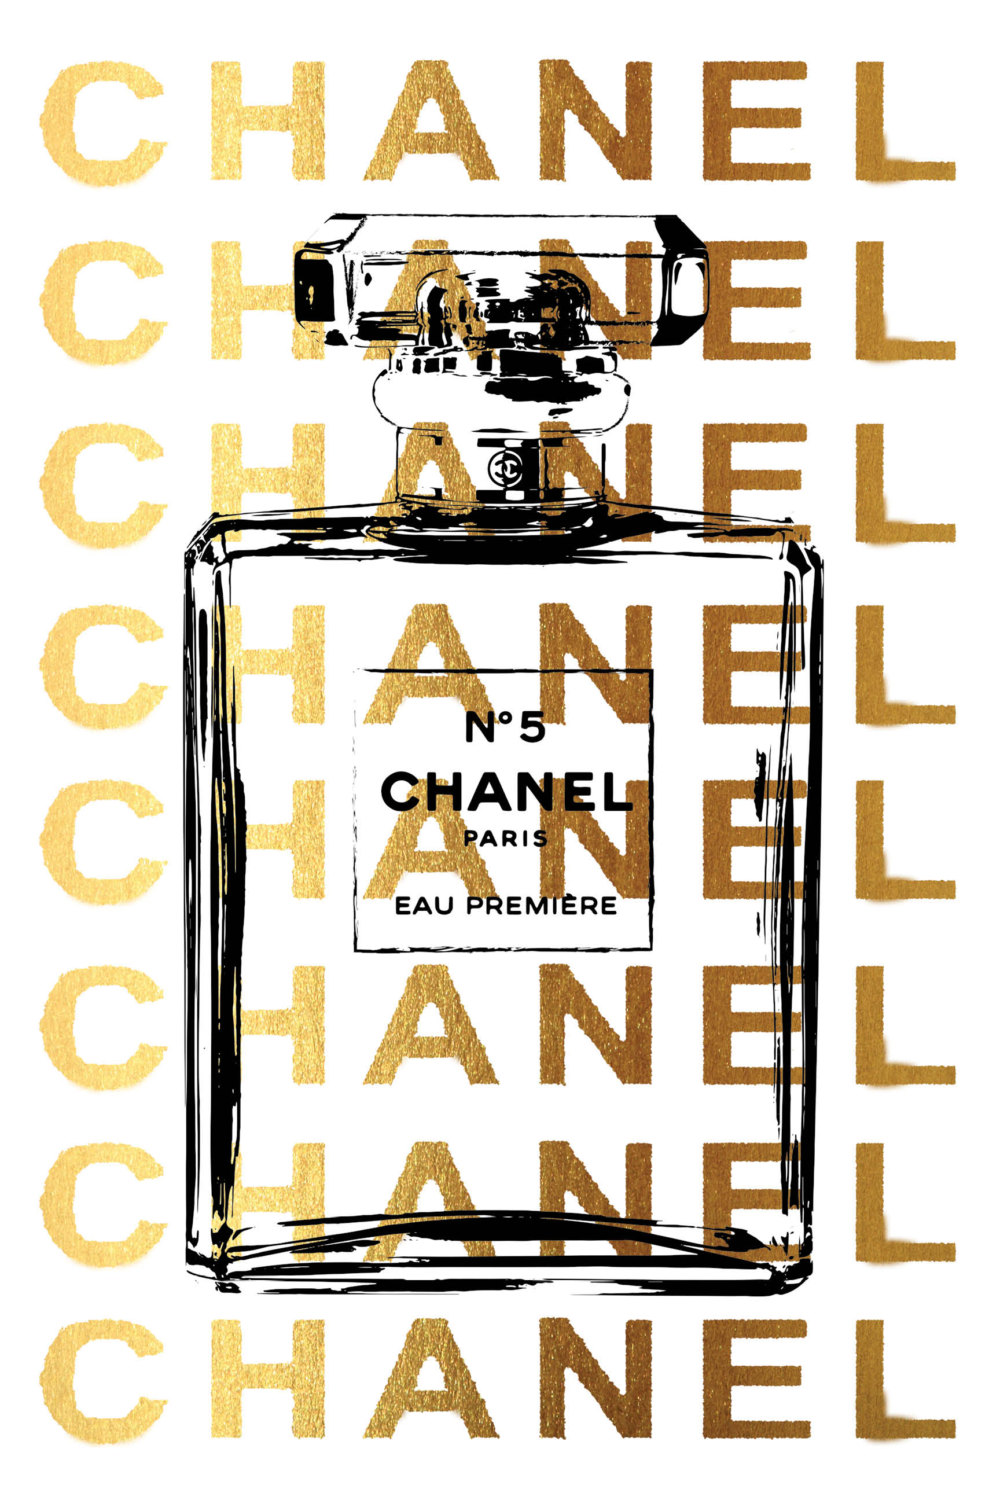 Chanel clipart large Large Chanel poster by poster